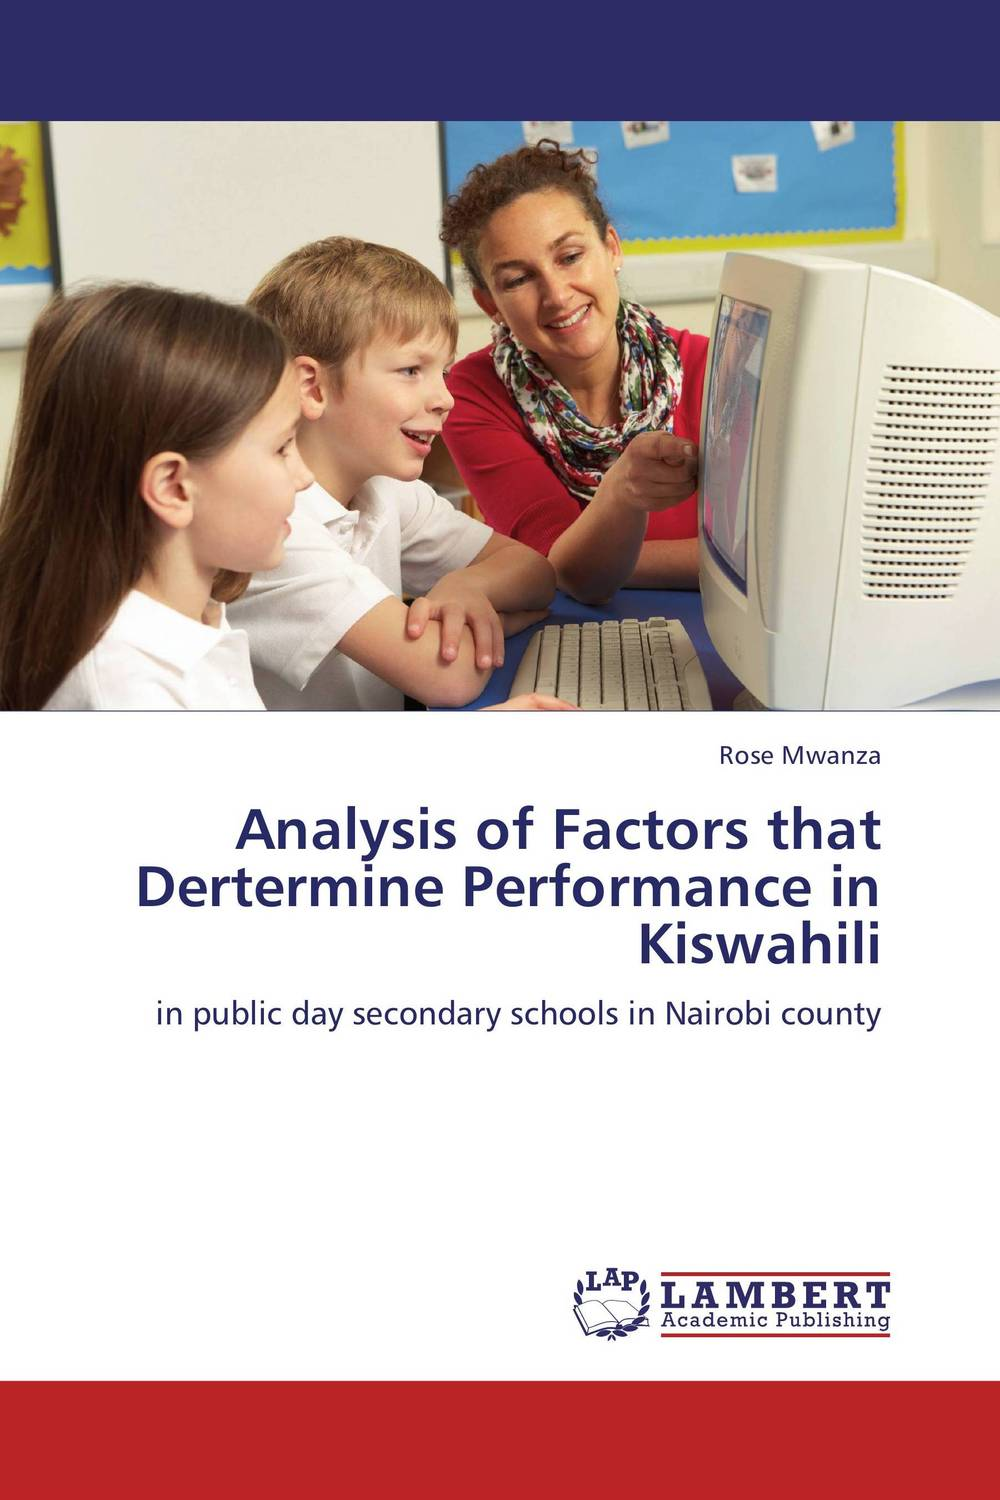 Analysis of Factors that Dertermine Performance in Kiswahili leadership and performance in public secondary schools in kenya